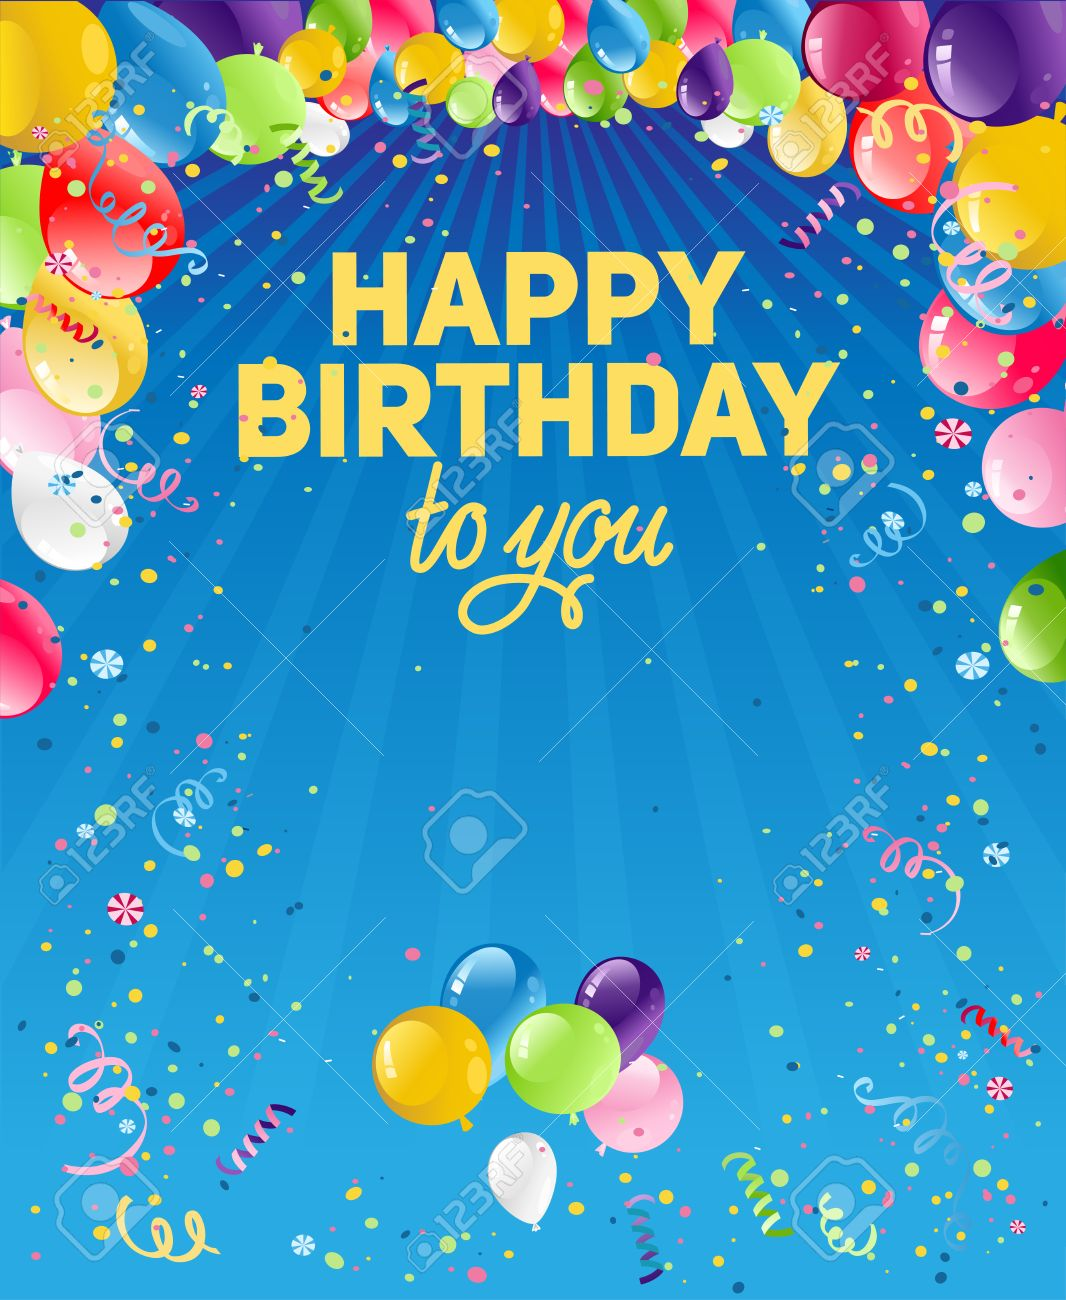 design banner happy birthday ; 71830781-holiday-template-for-design-banner-ticket-leaflet-card-poster-and-so-on-happy-birthday-background-an